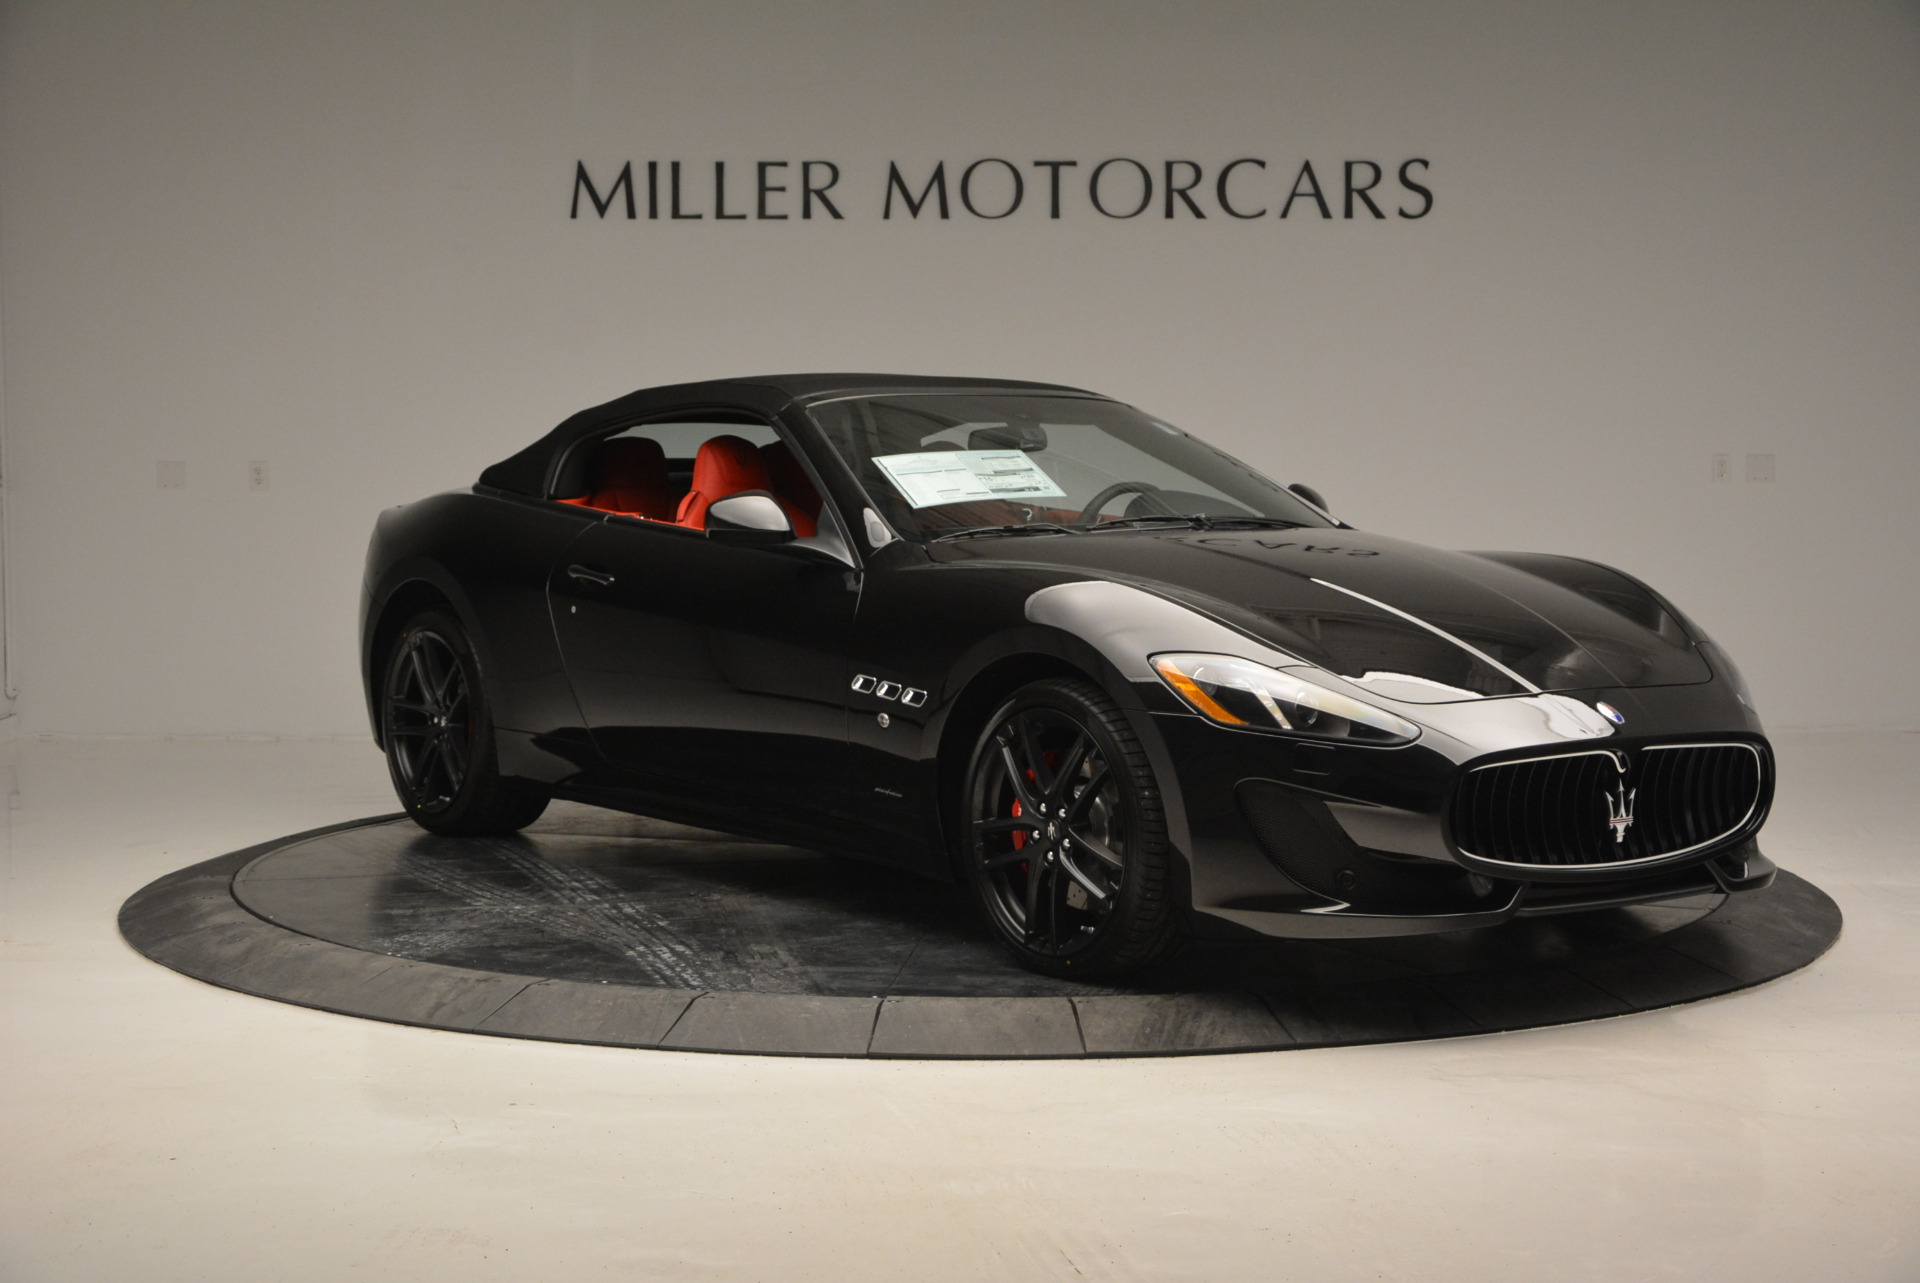 New 2017 Maserati GranTurismo Cab Sport For Sale In Greenwich, CT 687_p16